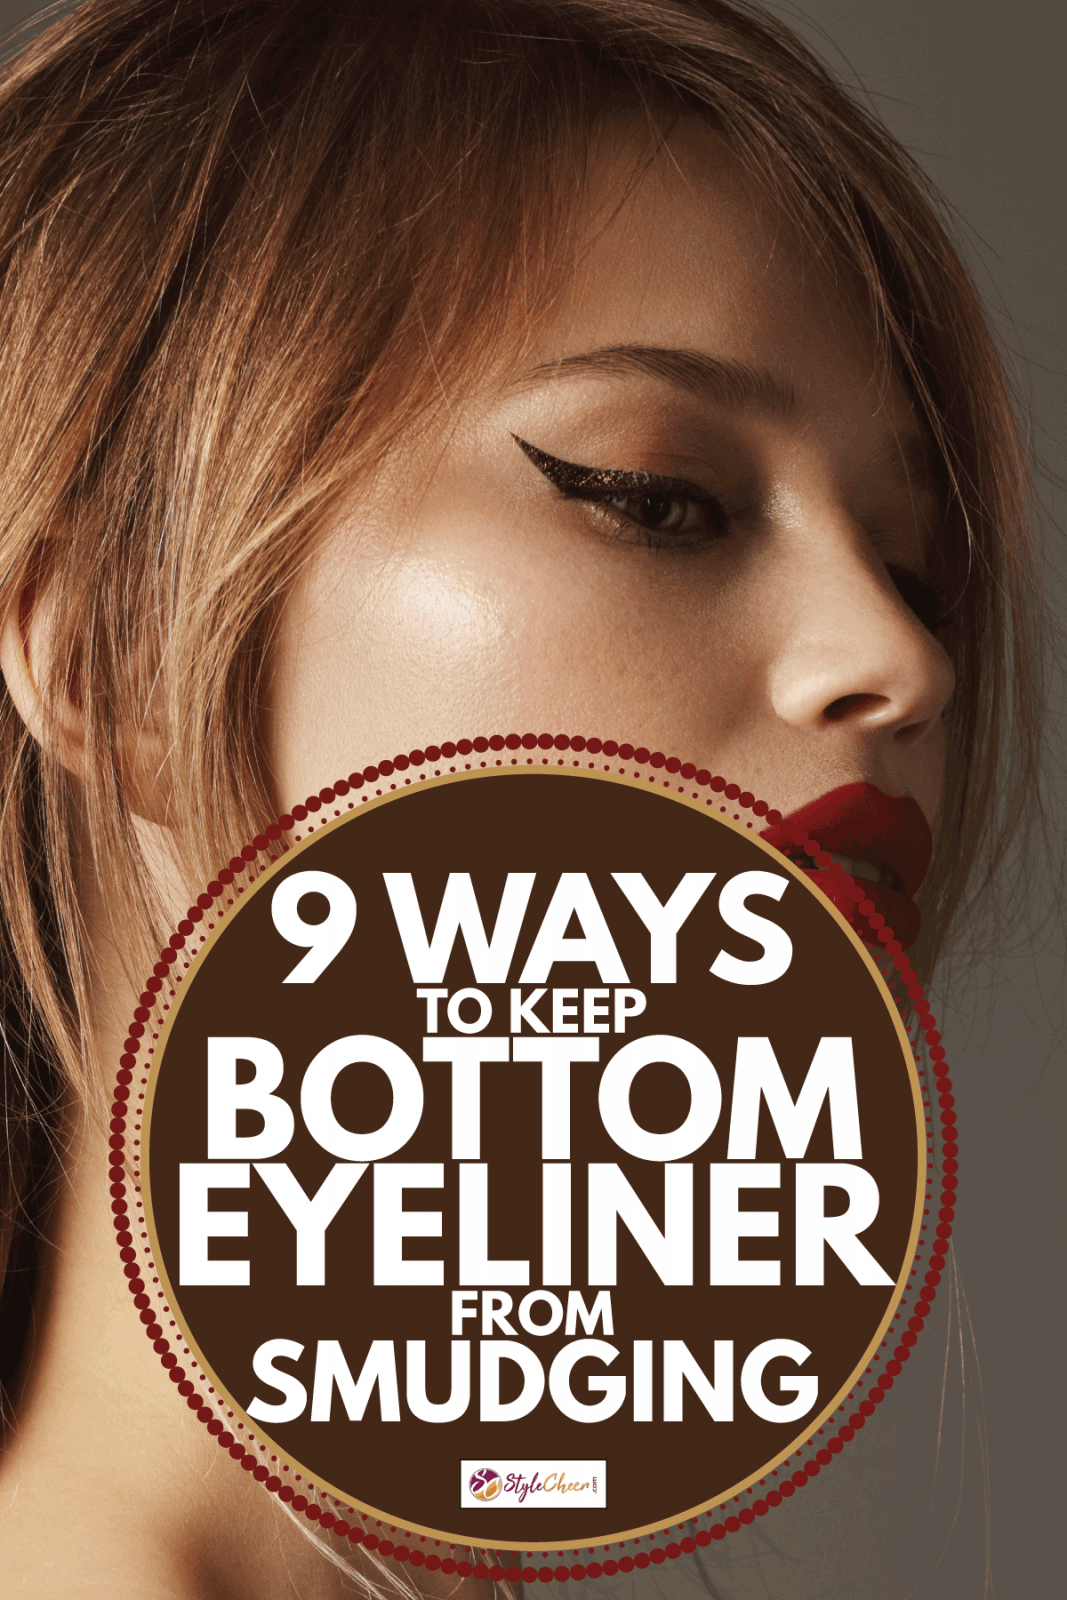 Close-up portrait of beautiful woman with red lipstick and cat eye make-up. 9 Ways To Keep Bottom Eyeliner From Smudging